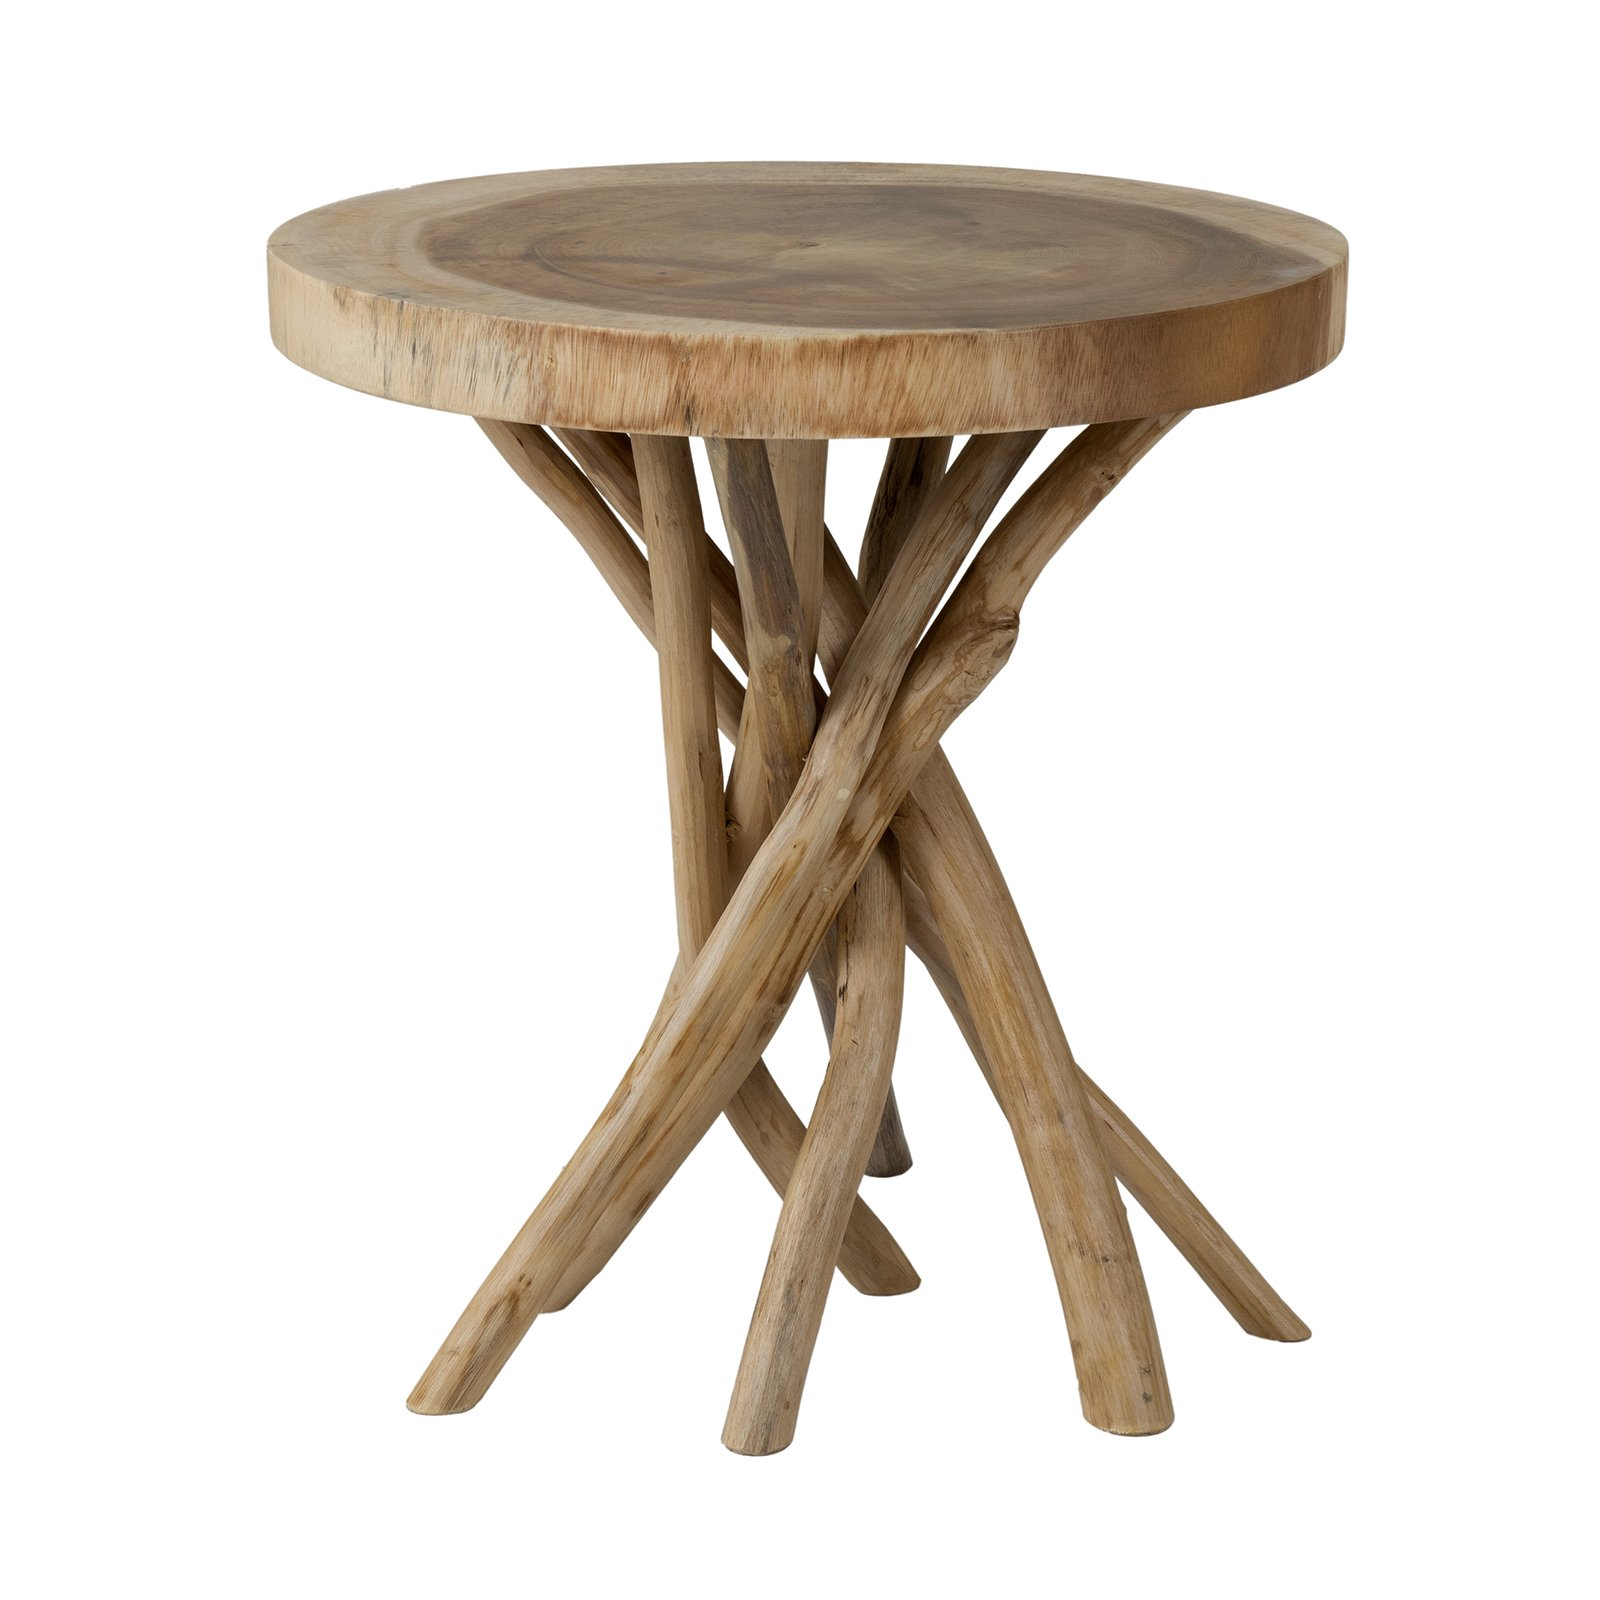 east main merrill brown round teakwood accent table mains teak wood free shipping today pier furniture clearance cute side tables black contemporary lamps cloth tablecloths marble